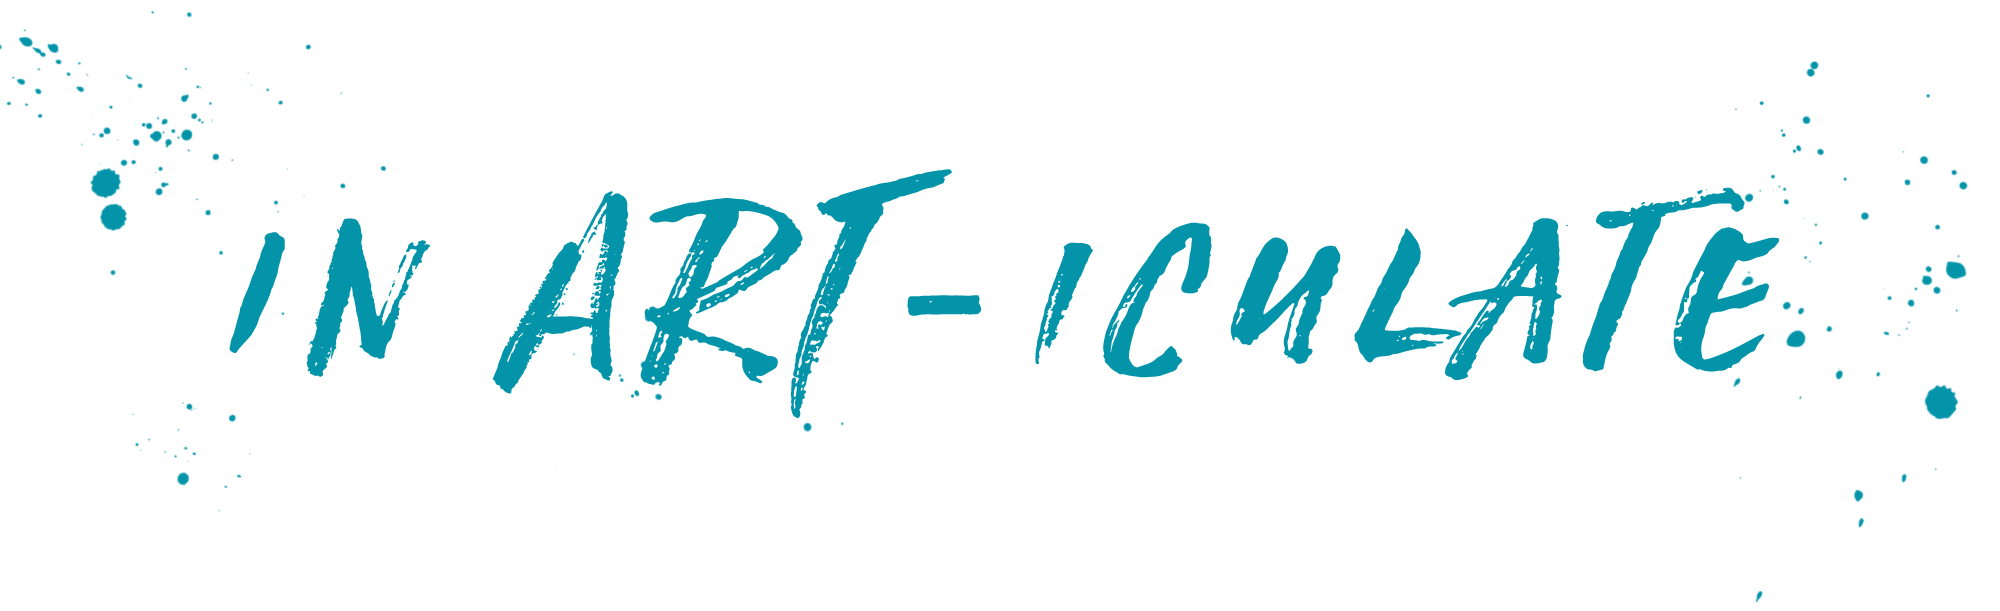 In-Art-Iculate-blog banner.png